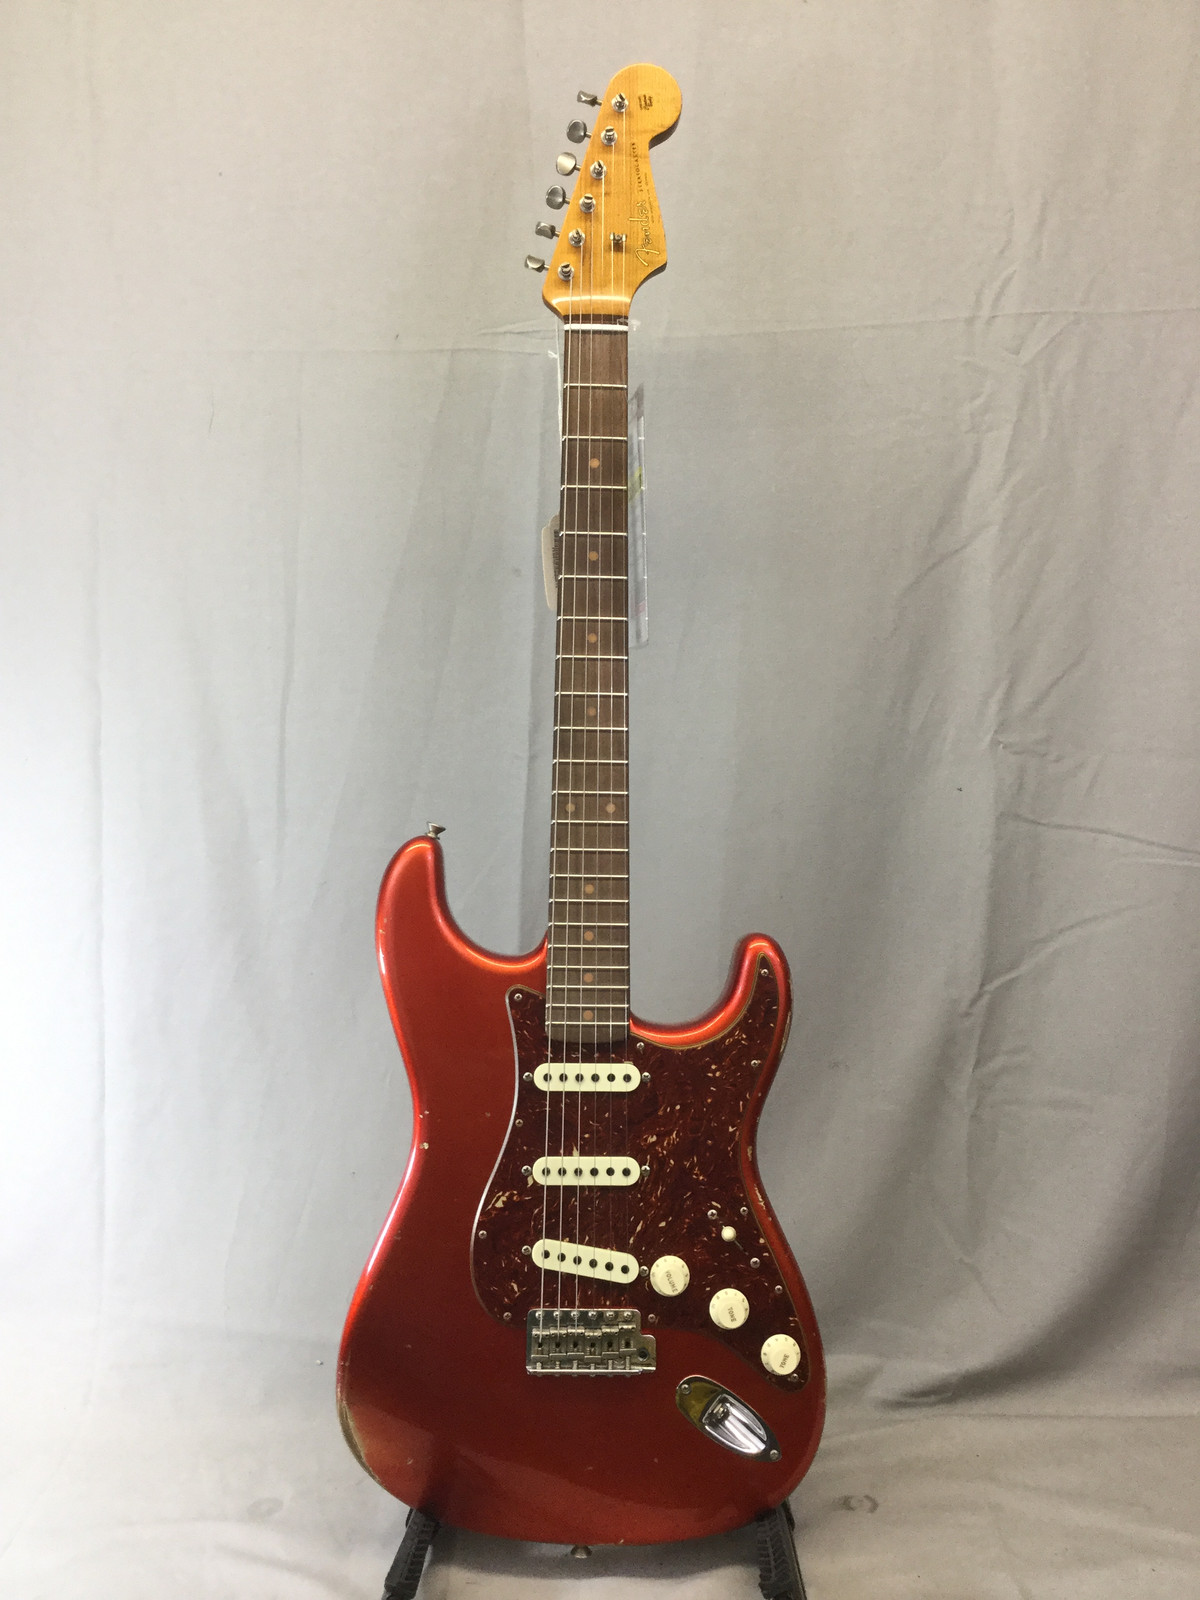 Firehouse Guitars Grandville Instrument Sales Lessons Guitar Kill Switch Wiring As Well Fender 18 Ltd Custom Shop Aged Car Roasted 1960 Relic Strat 3950